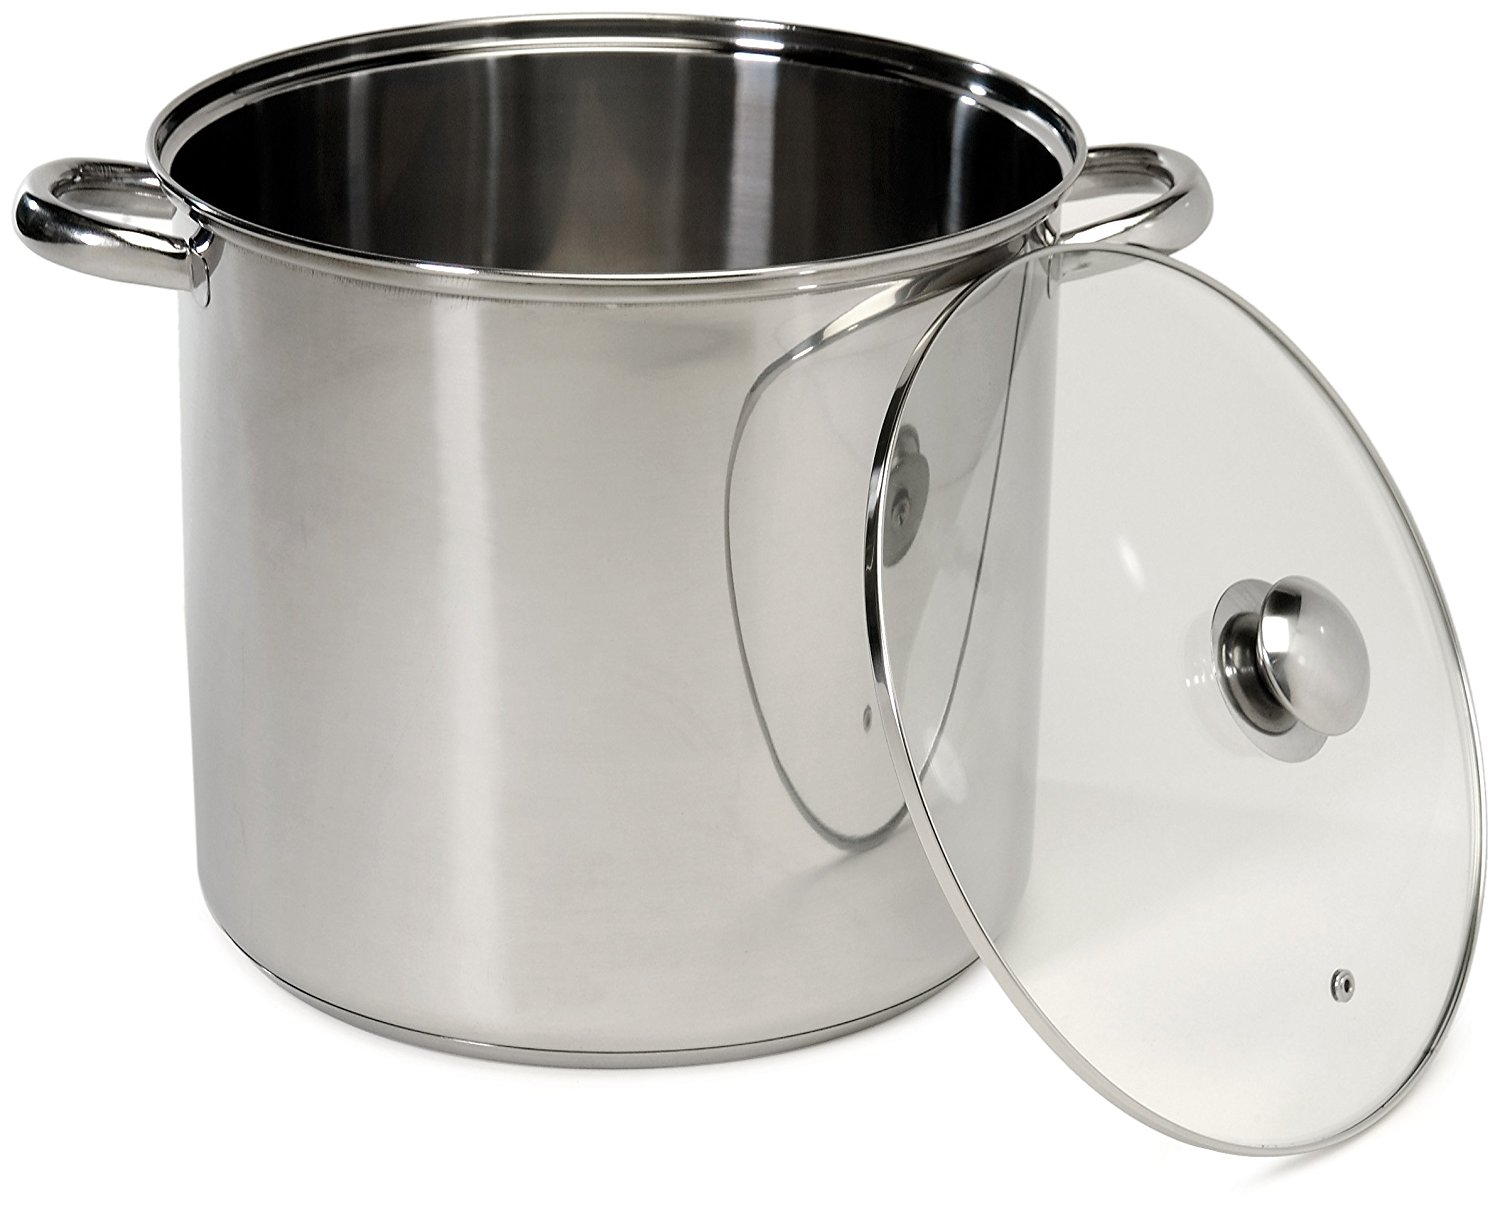 how to clean stainless steel pots